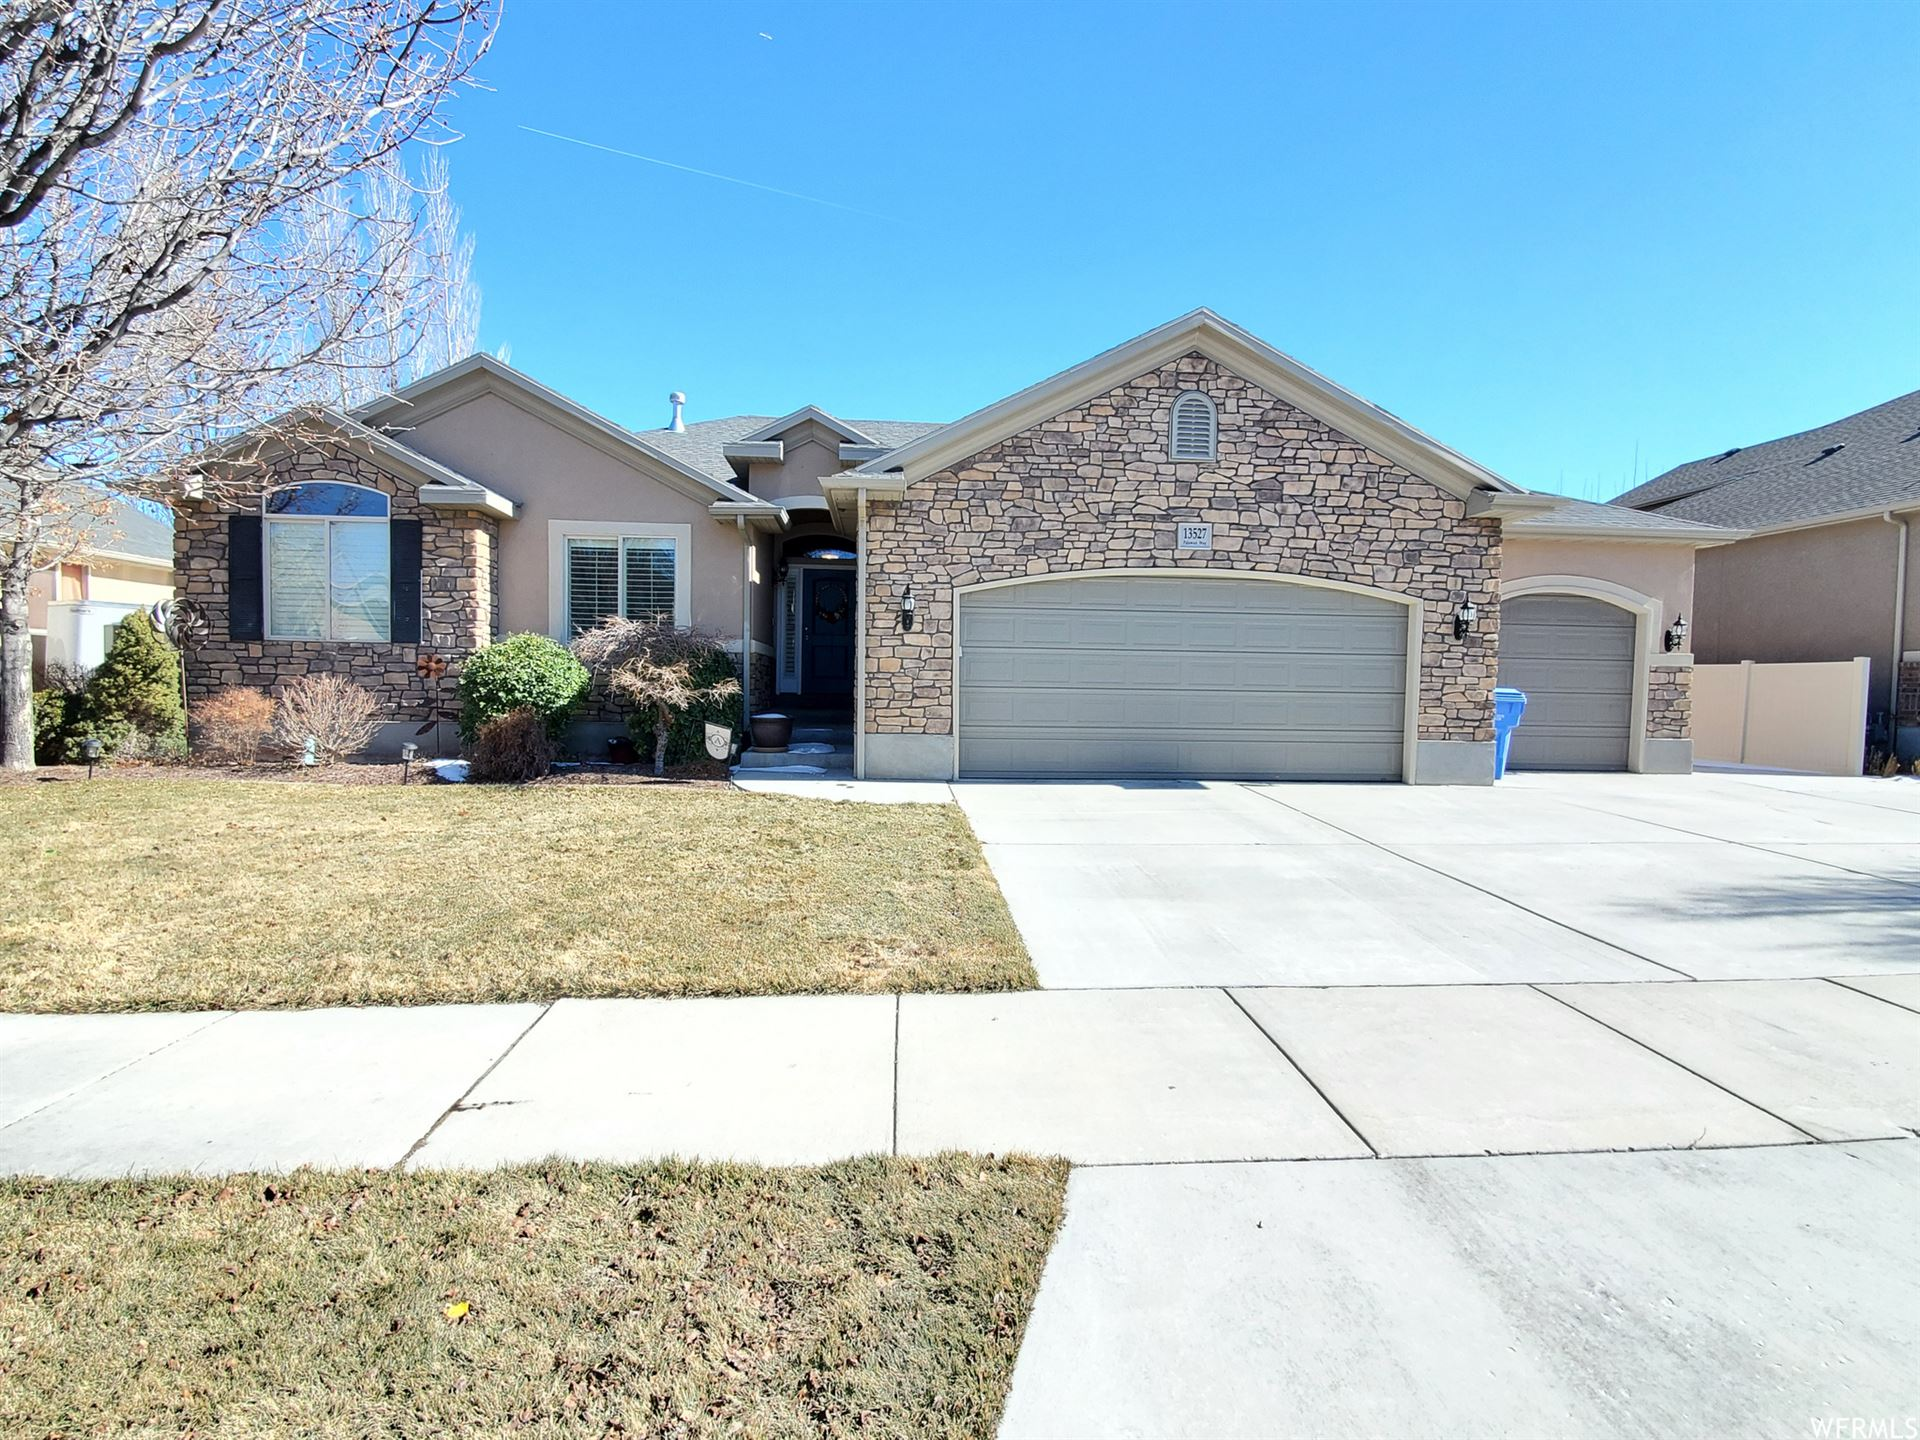 Photo of 13527 S PALAWAN WAY, Riverton, UT 84065 (MLS # 1727278)